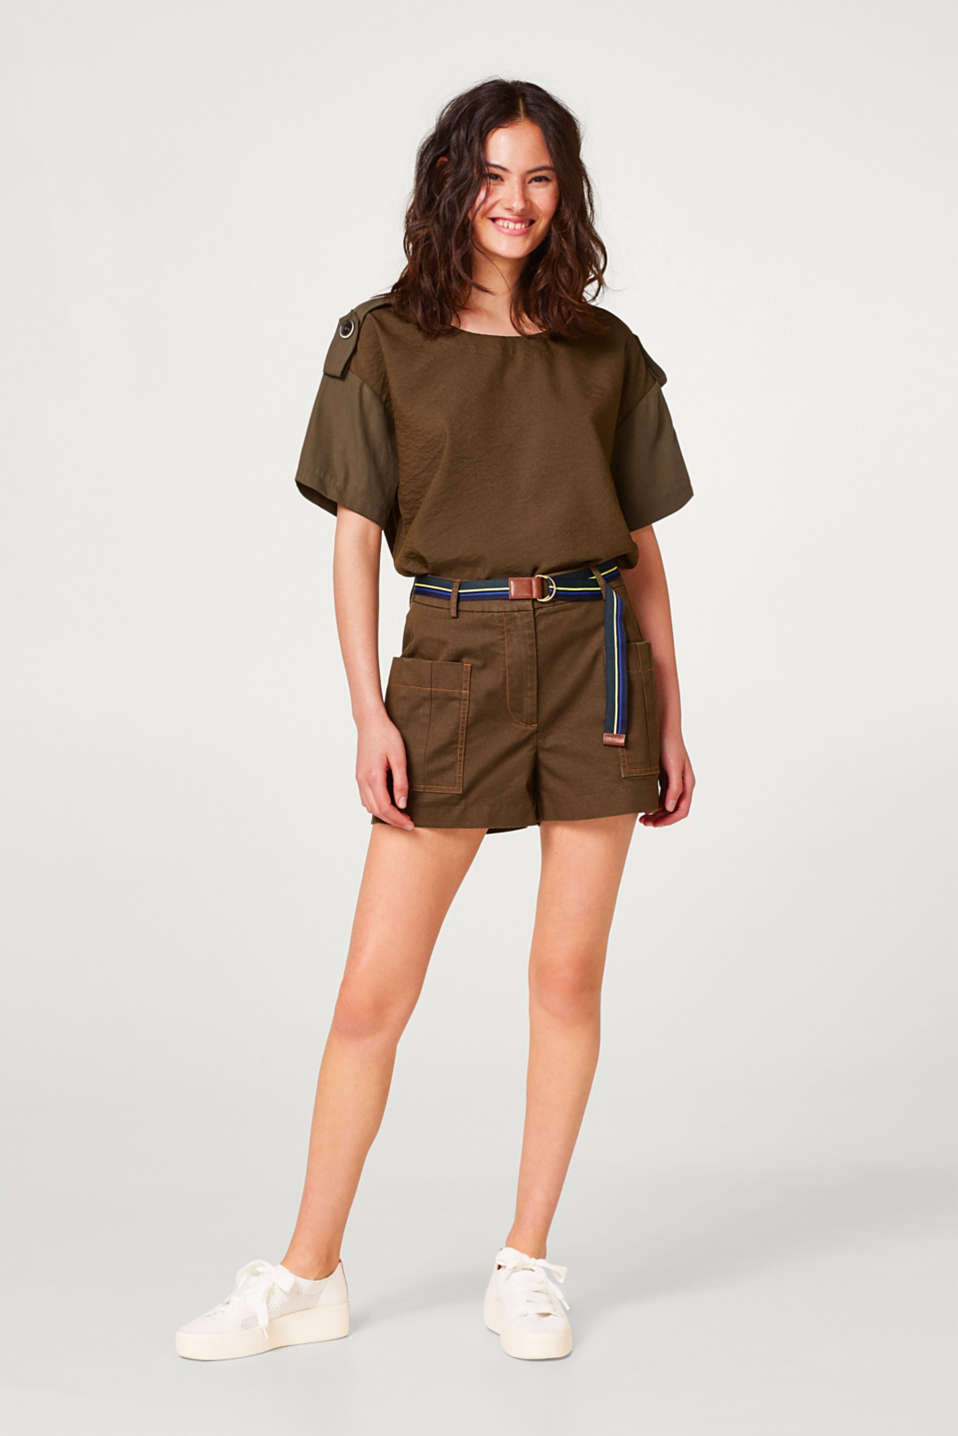 Shorts with patch pockets and a belt